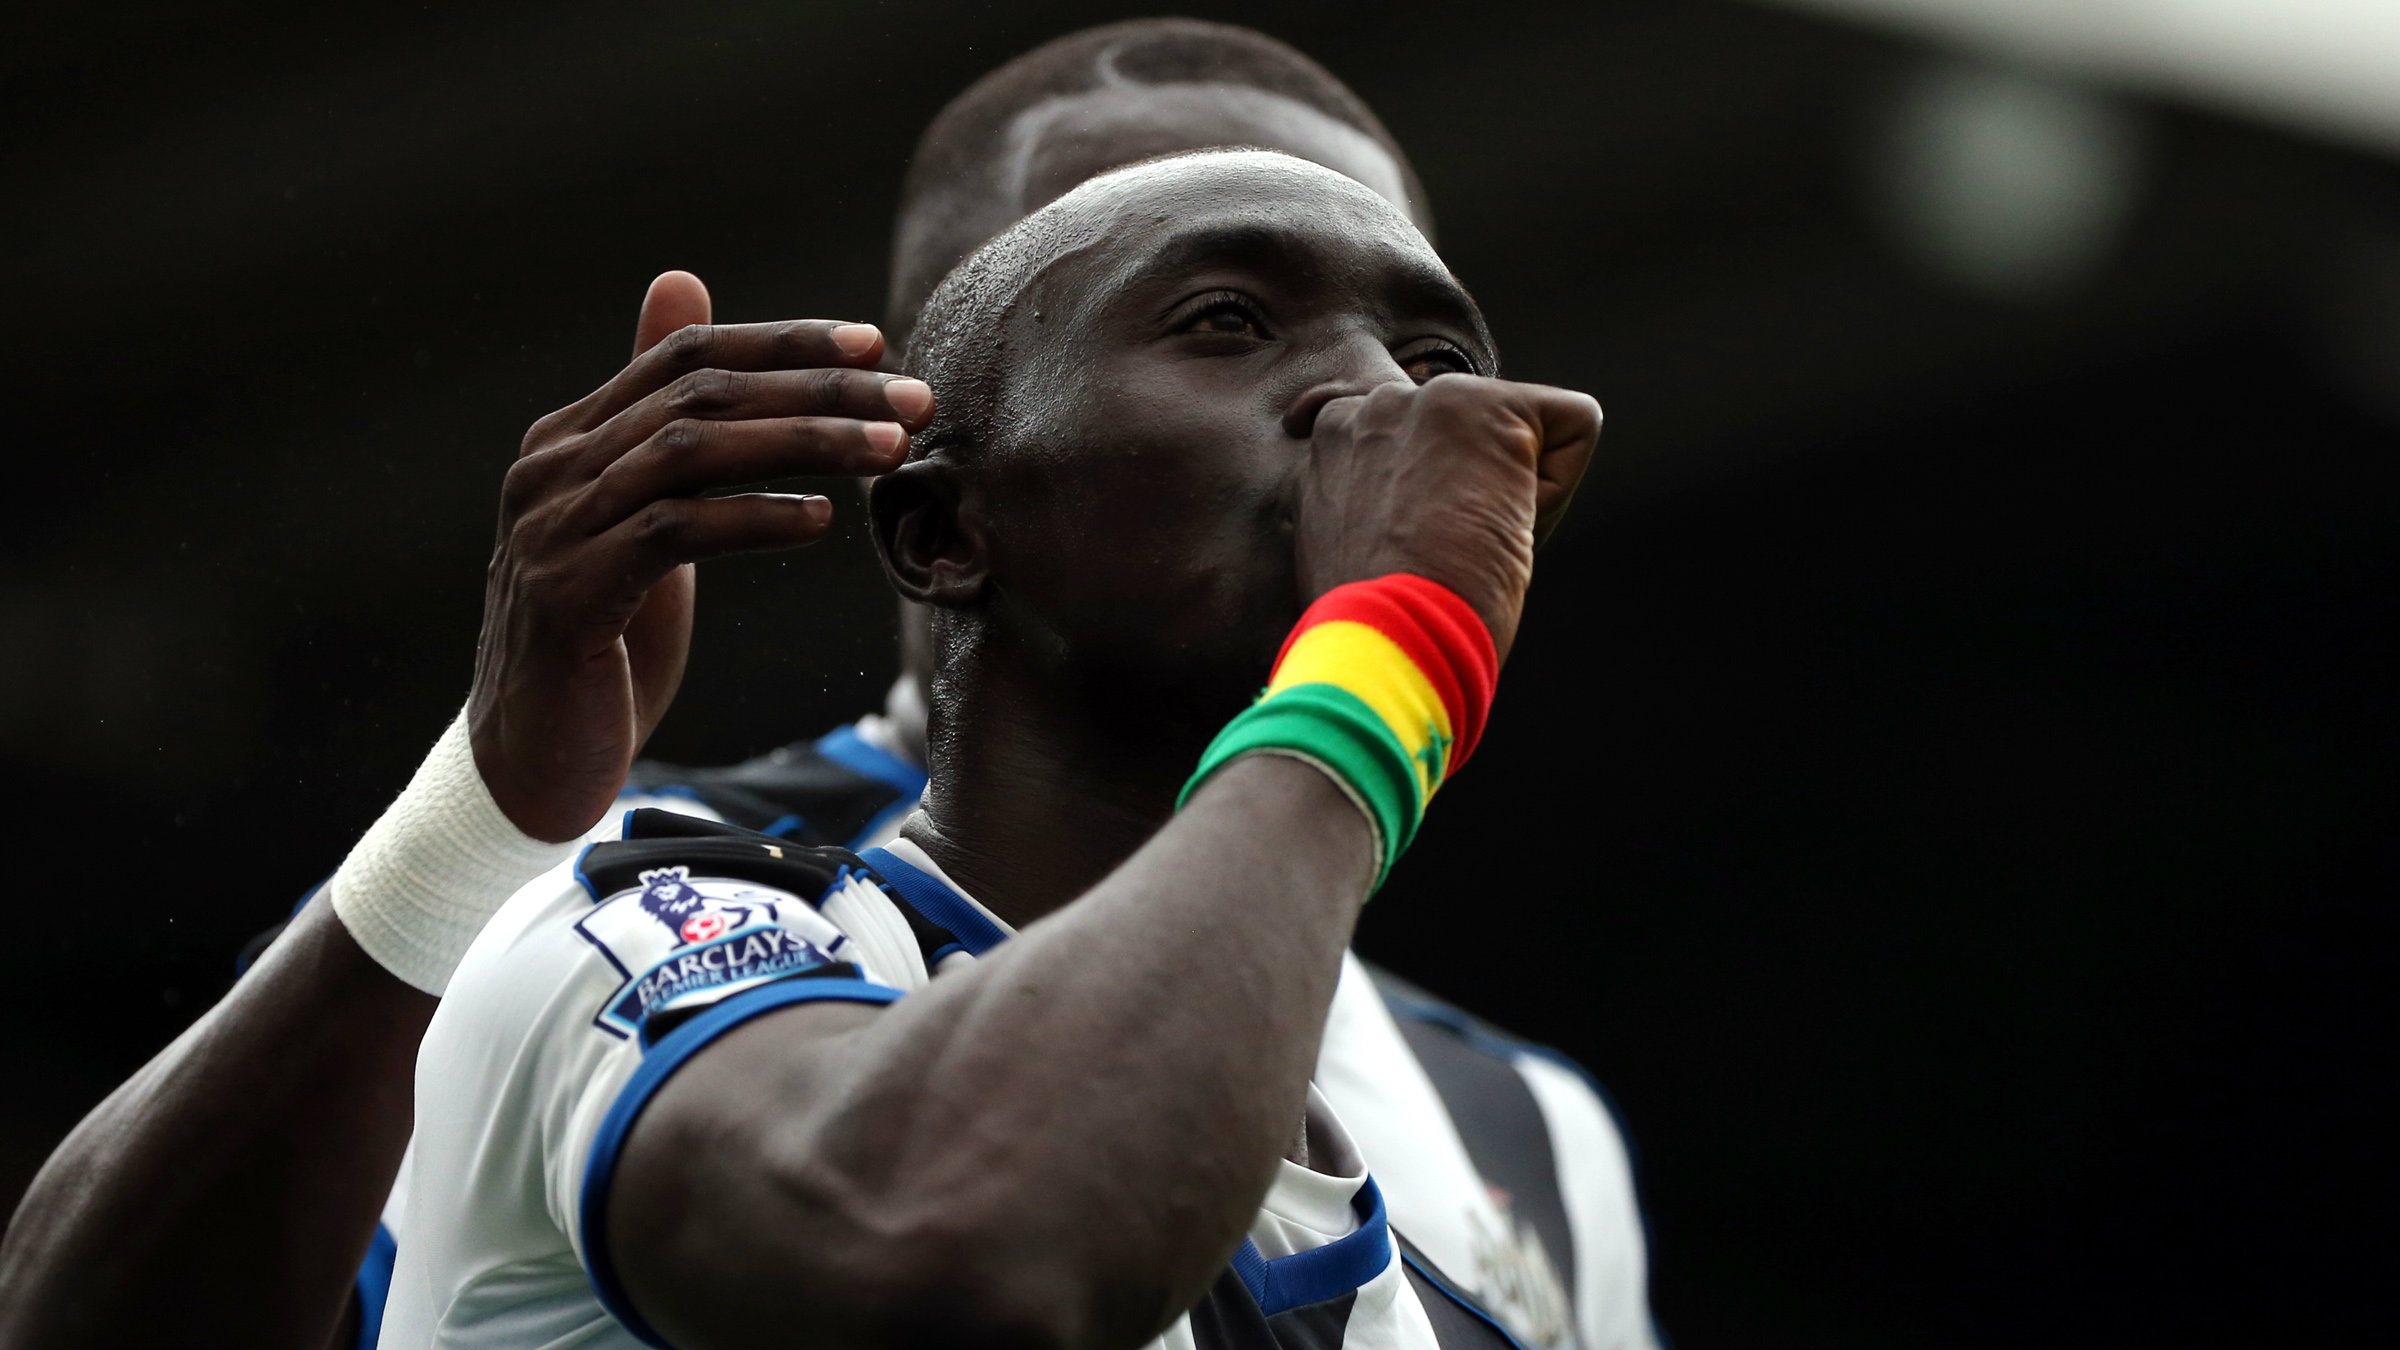 Newcastle United's Papiss Cisse celebrates his goal during their English Premier League soccer match between Newcastle United and Southampton at St James' Park, Newcastle, England, Sunday, Aug. 9, 2015.